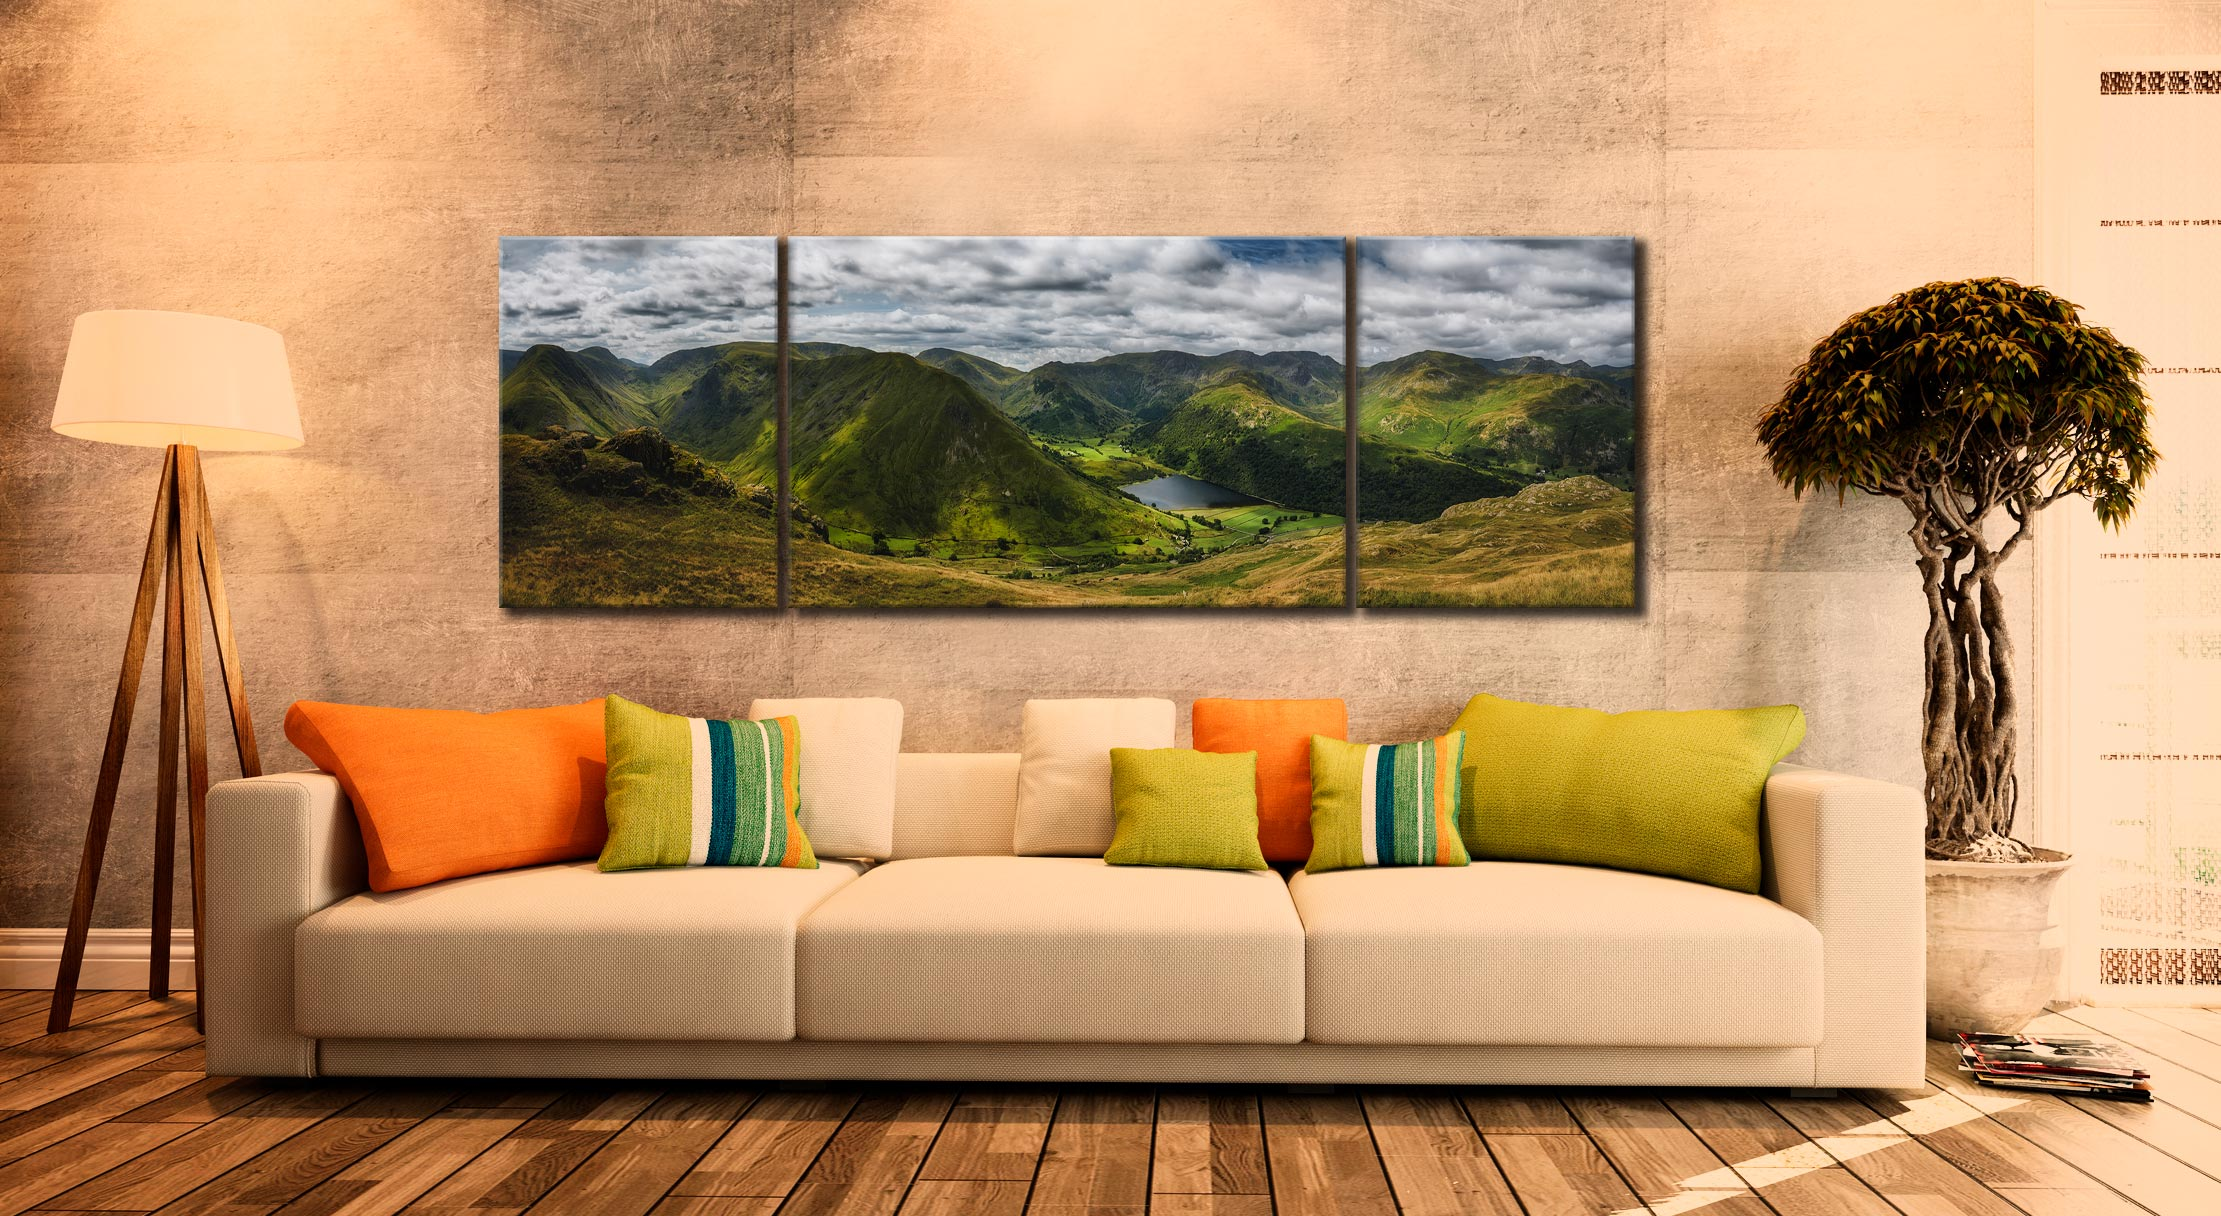 Satura Crag Panorama - 3 Panel Wide Centre Canvas on Wall